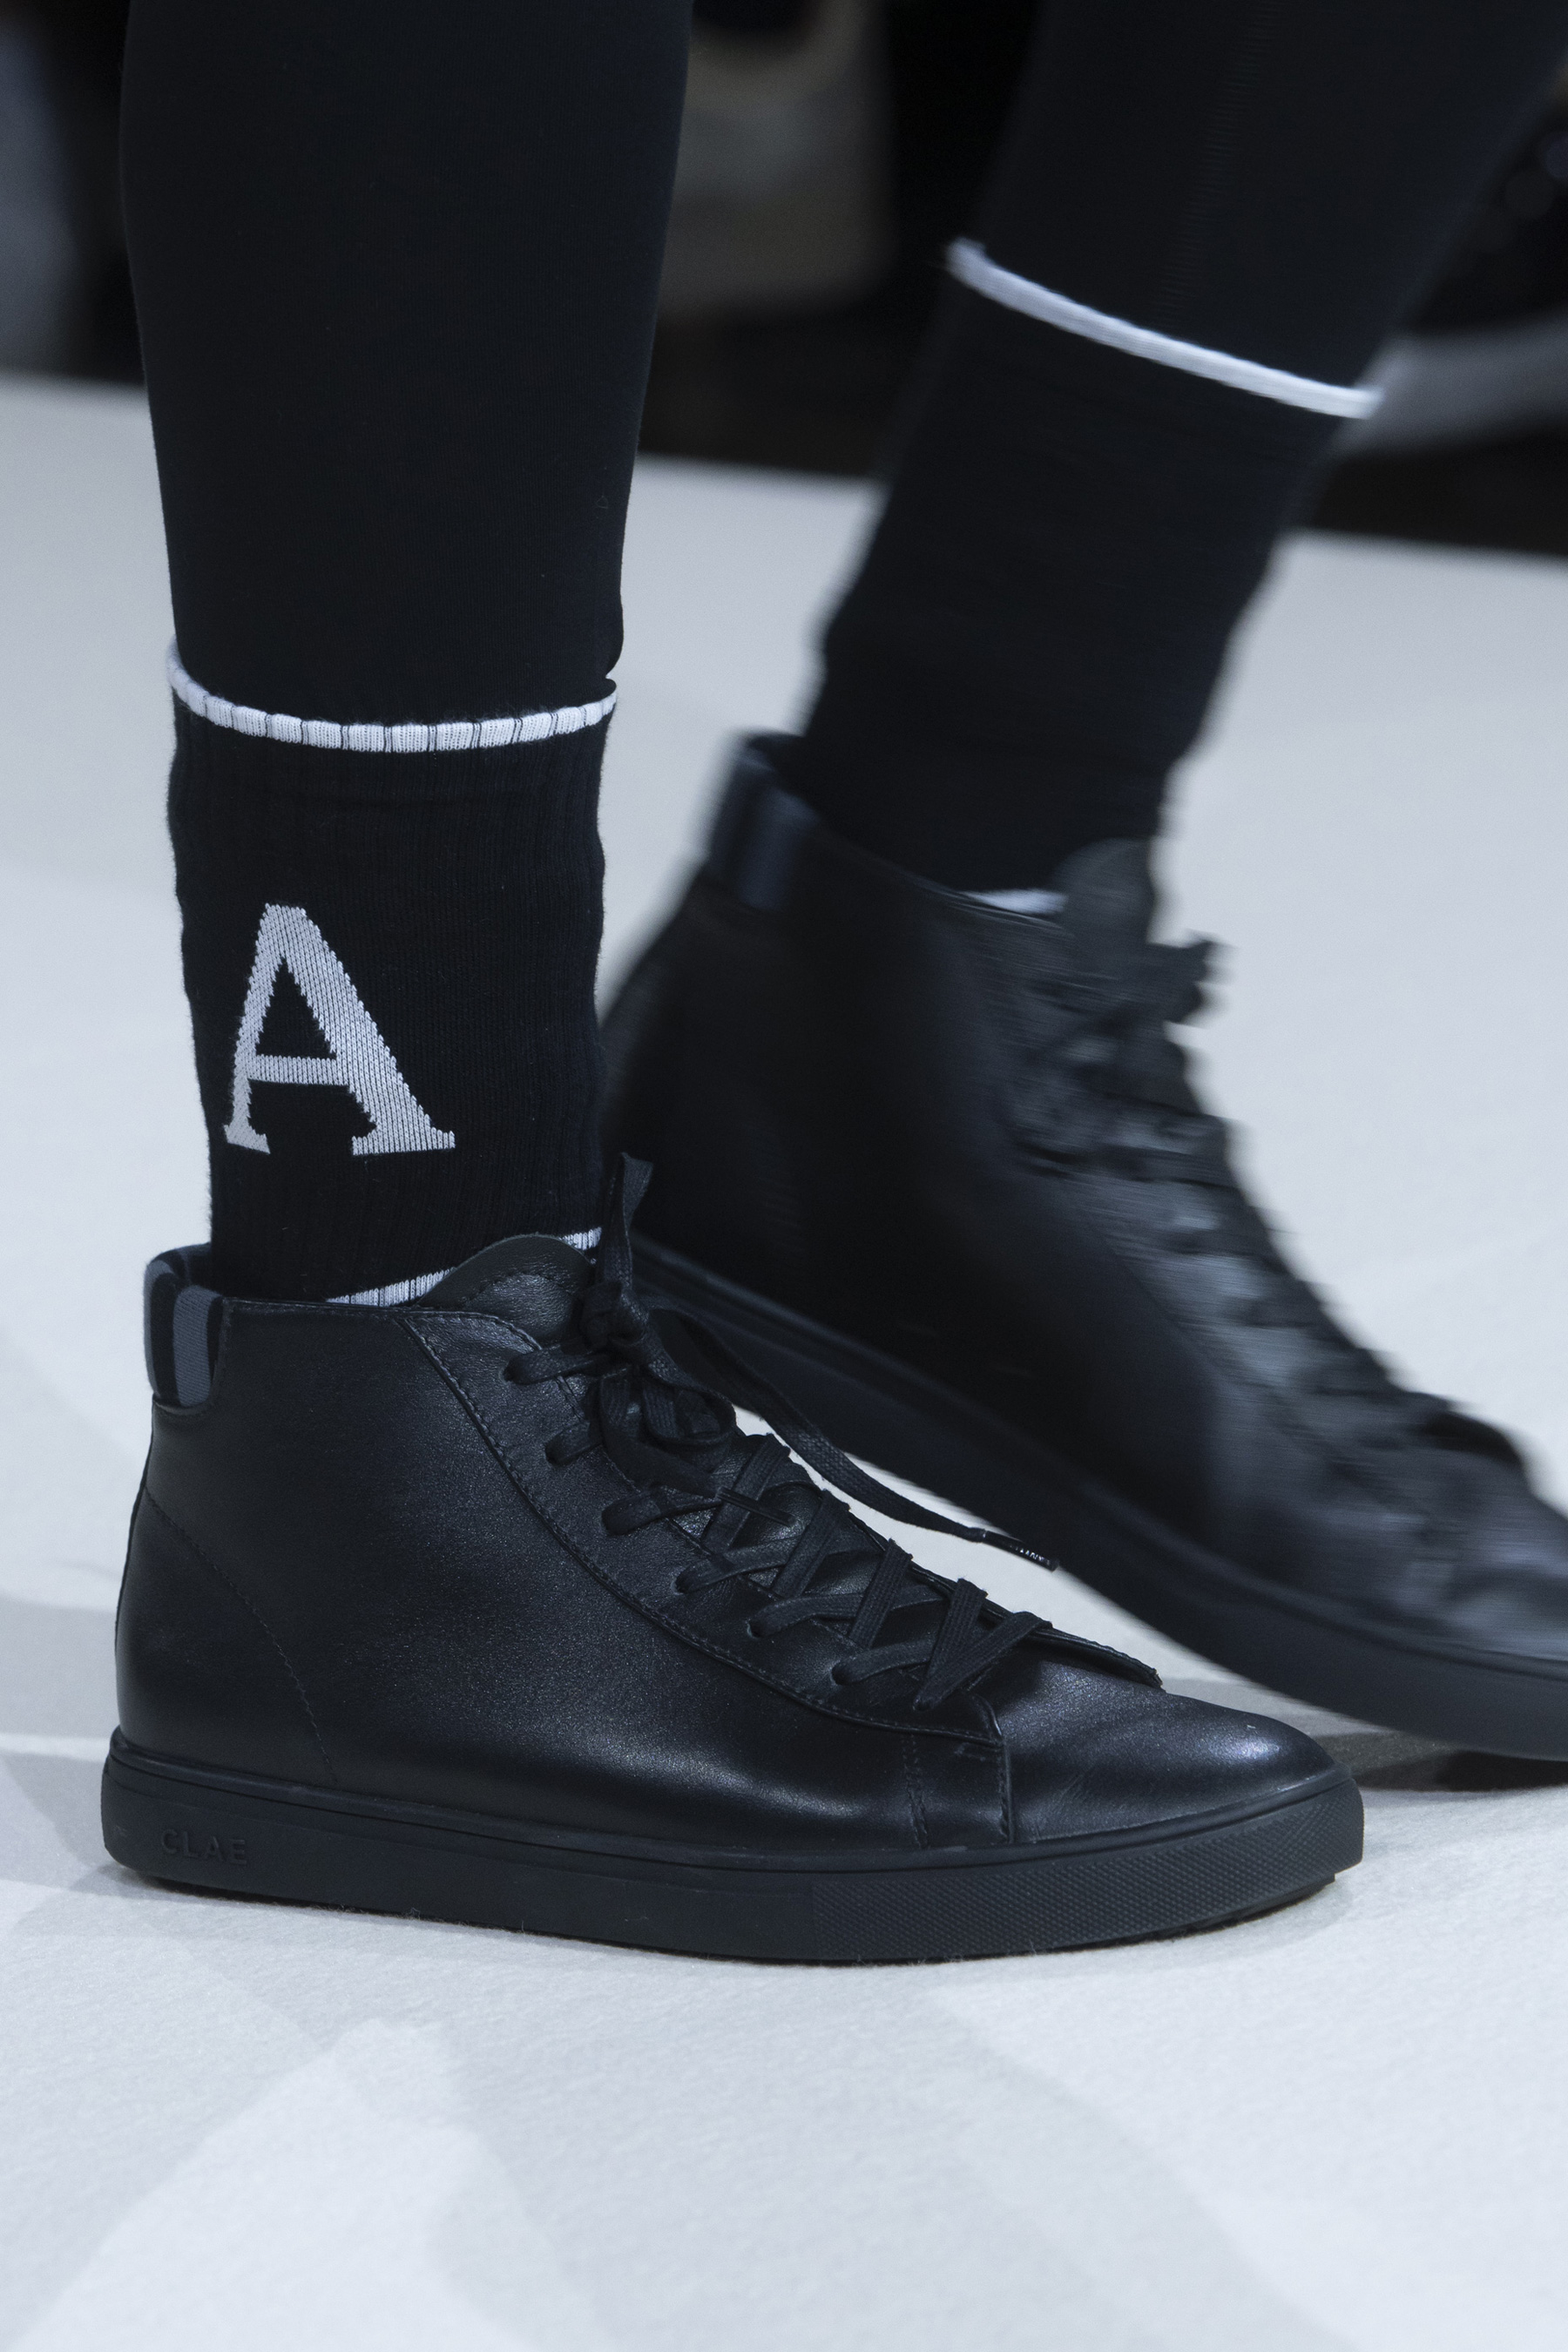 Agnes B Fall 2019 Fashion Show Details